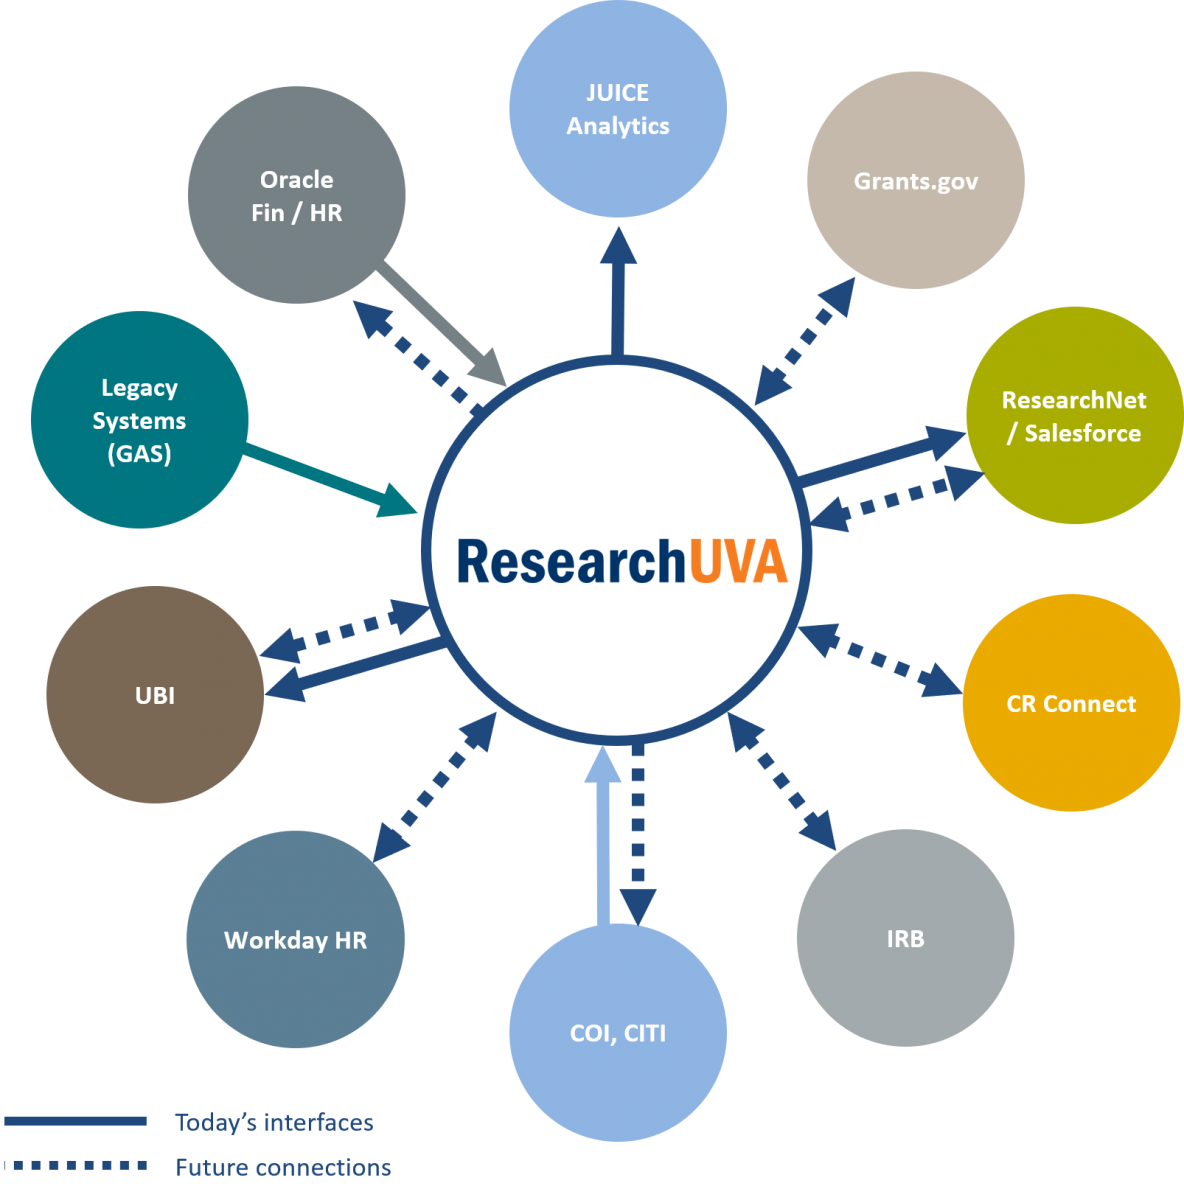 Graphic illustrating how current and planned integrations for ResearchUVA and other UVA systems